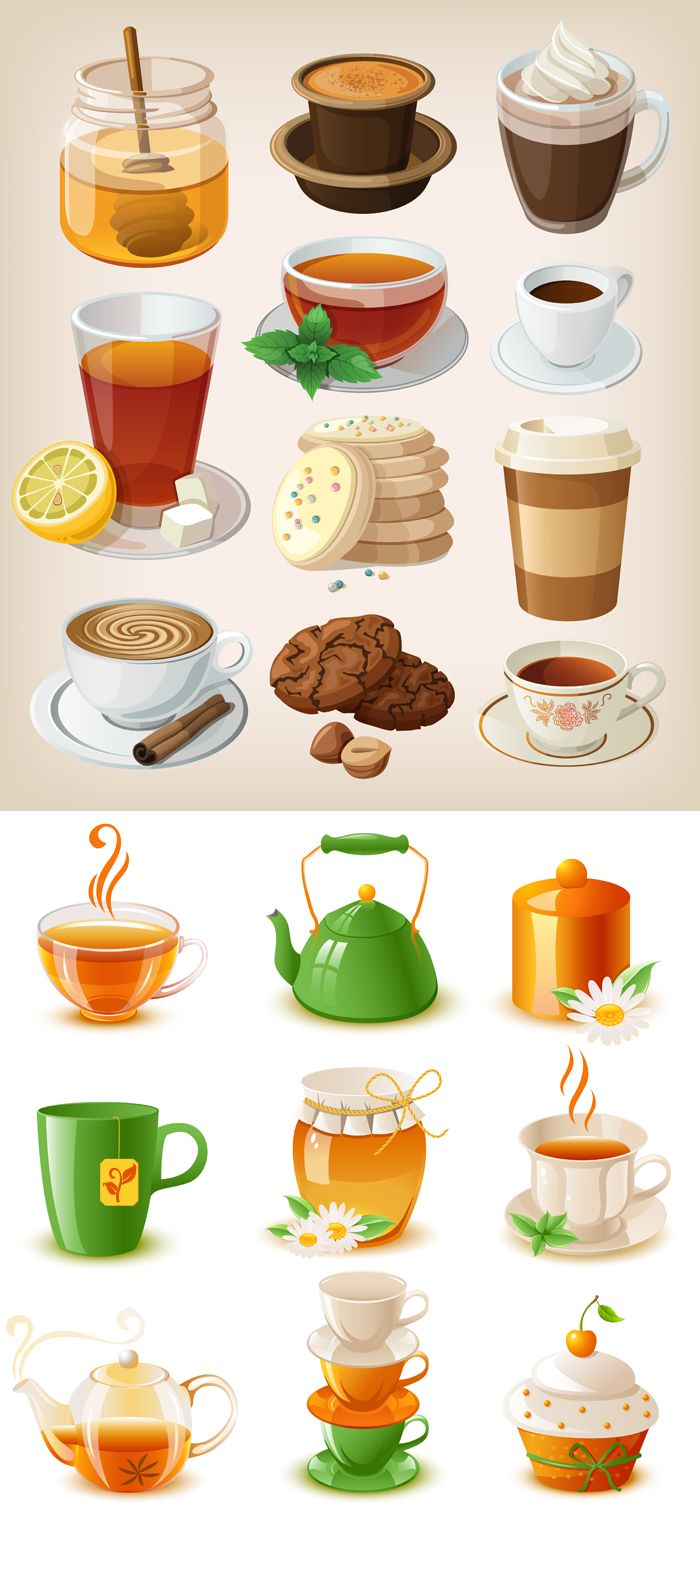 cartoon vector food drinks clipart drink material foods fruit coffee illustration drinkware beverages drawing clip illustrations cute myfreephotoshop mode cartoons